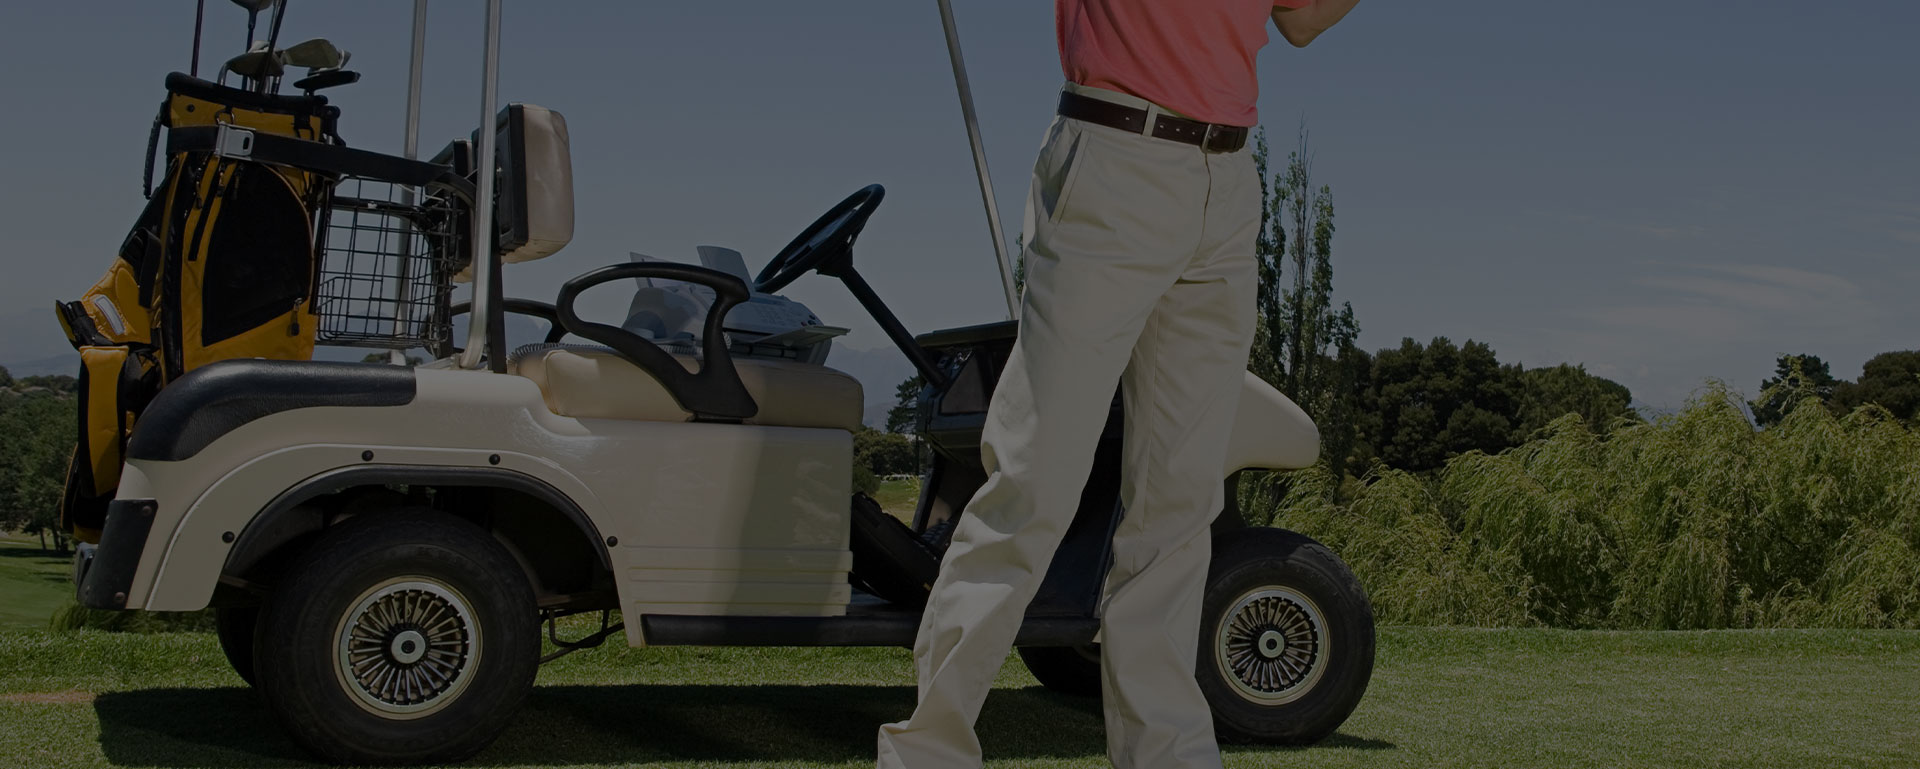 Lithium Battery for Golf Carts